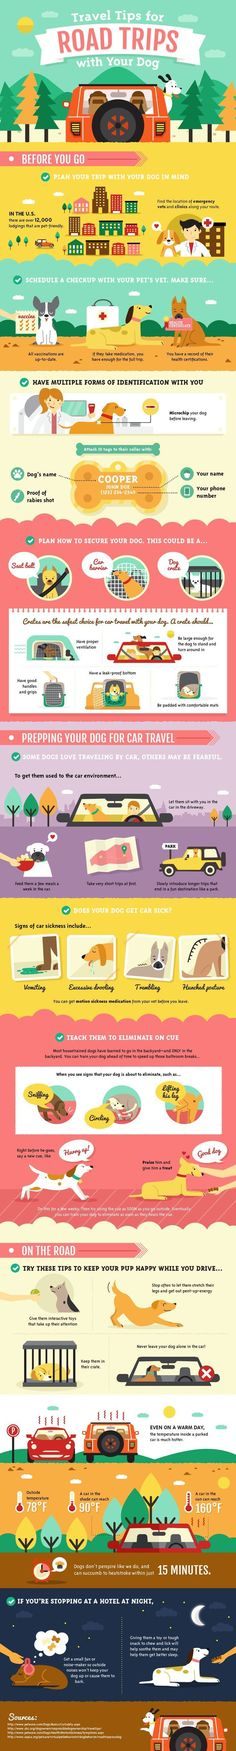 Pet travel can be a fun and rewarding experience with the proper preparation, but without this preparation it can be a trying task for you and your pooch. To prepare you for the potential pitfalls of traveling with #dogs, we present to you a guide to introducing #puppies to the car and an infographic of Travel Tips for Road Trips